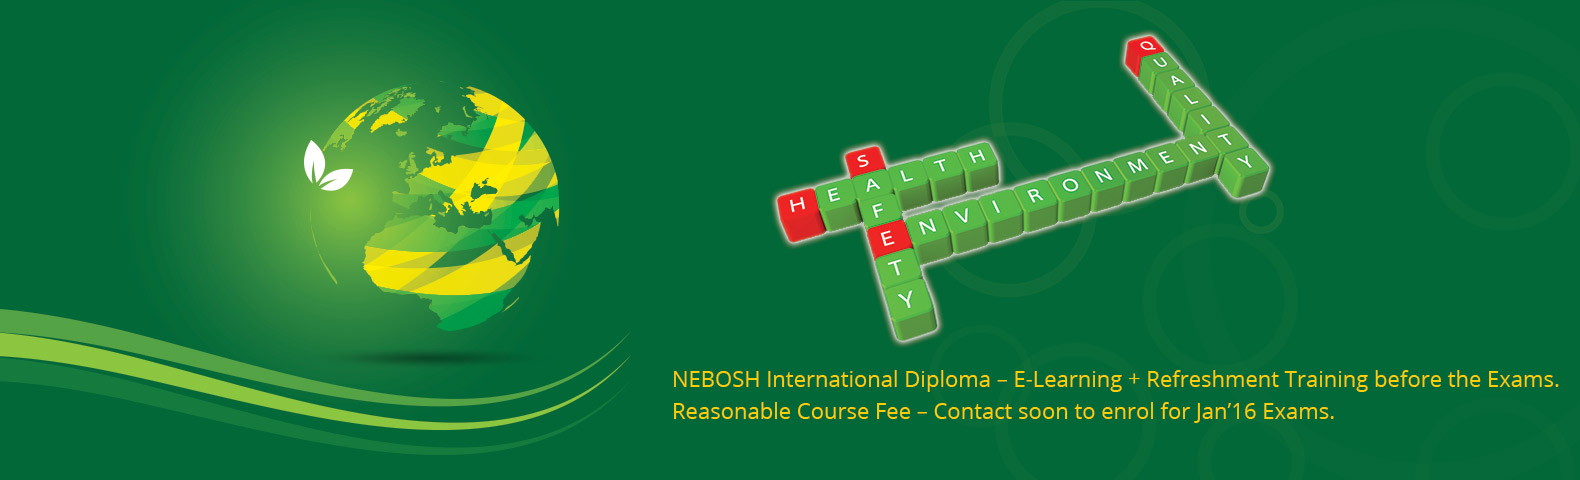 nebosh idip The nebosh international diploma is the qualification for aspiring health and safety professionals building directly upon the foundation of knowledge provided by the nebosh international general certificate.